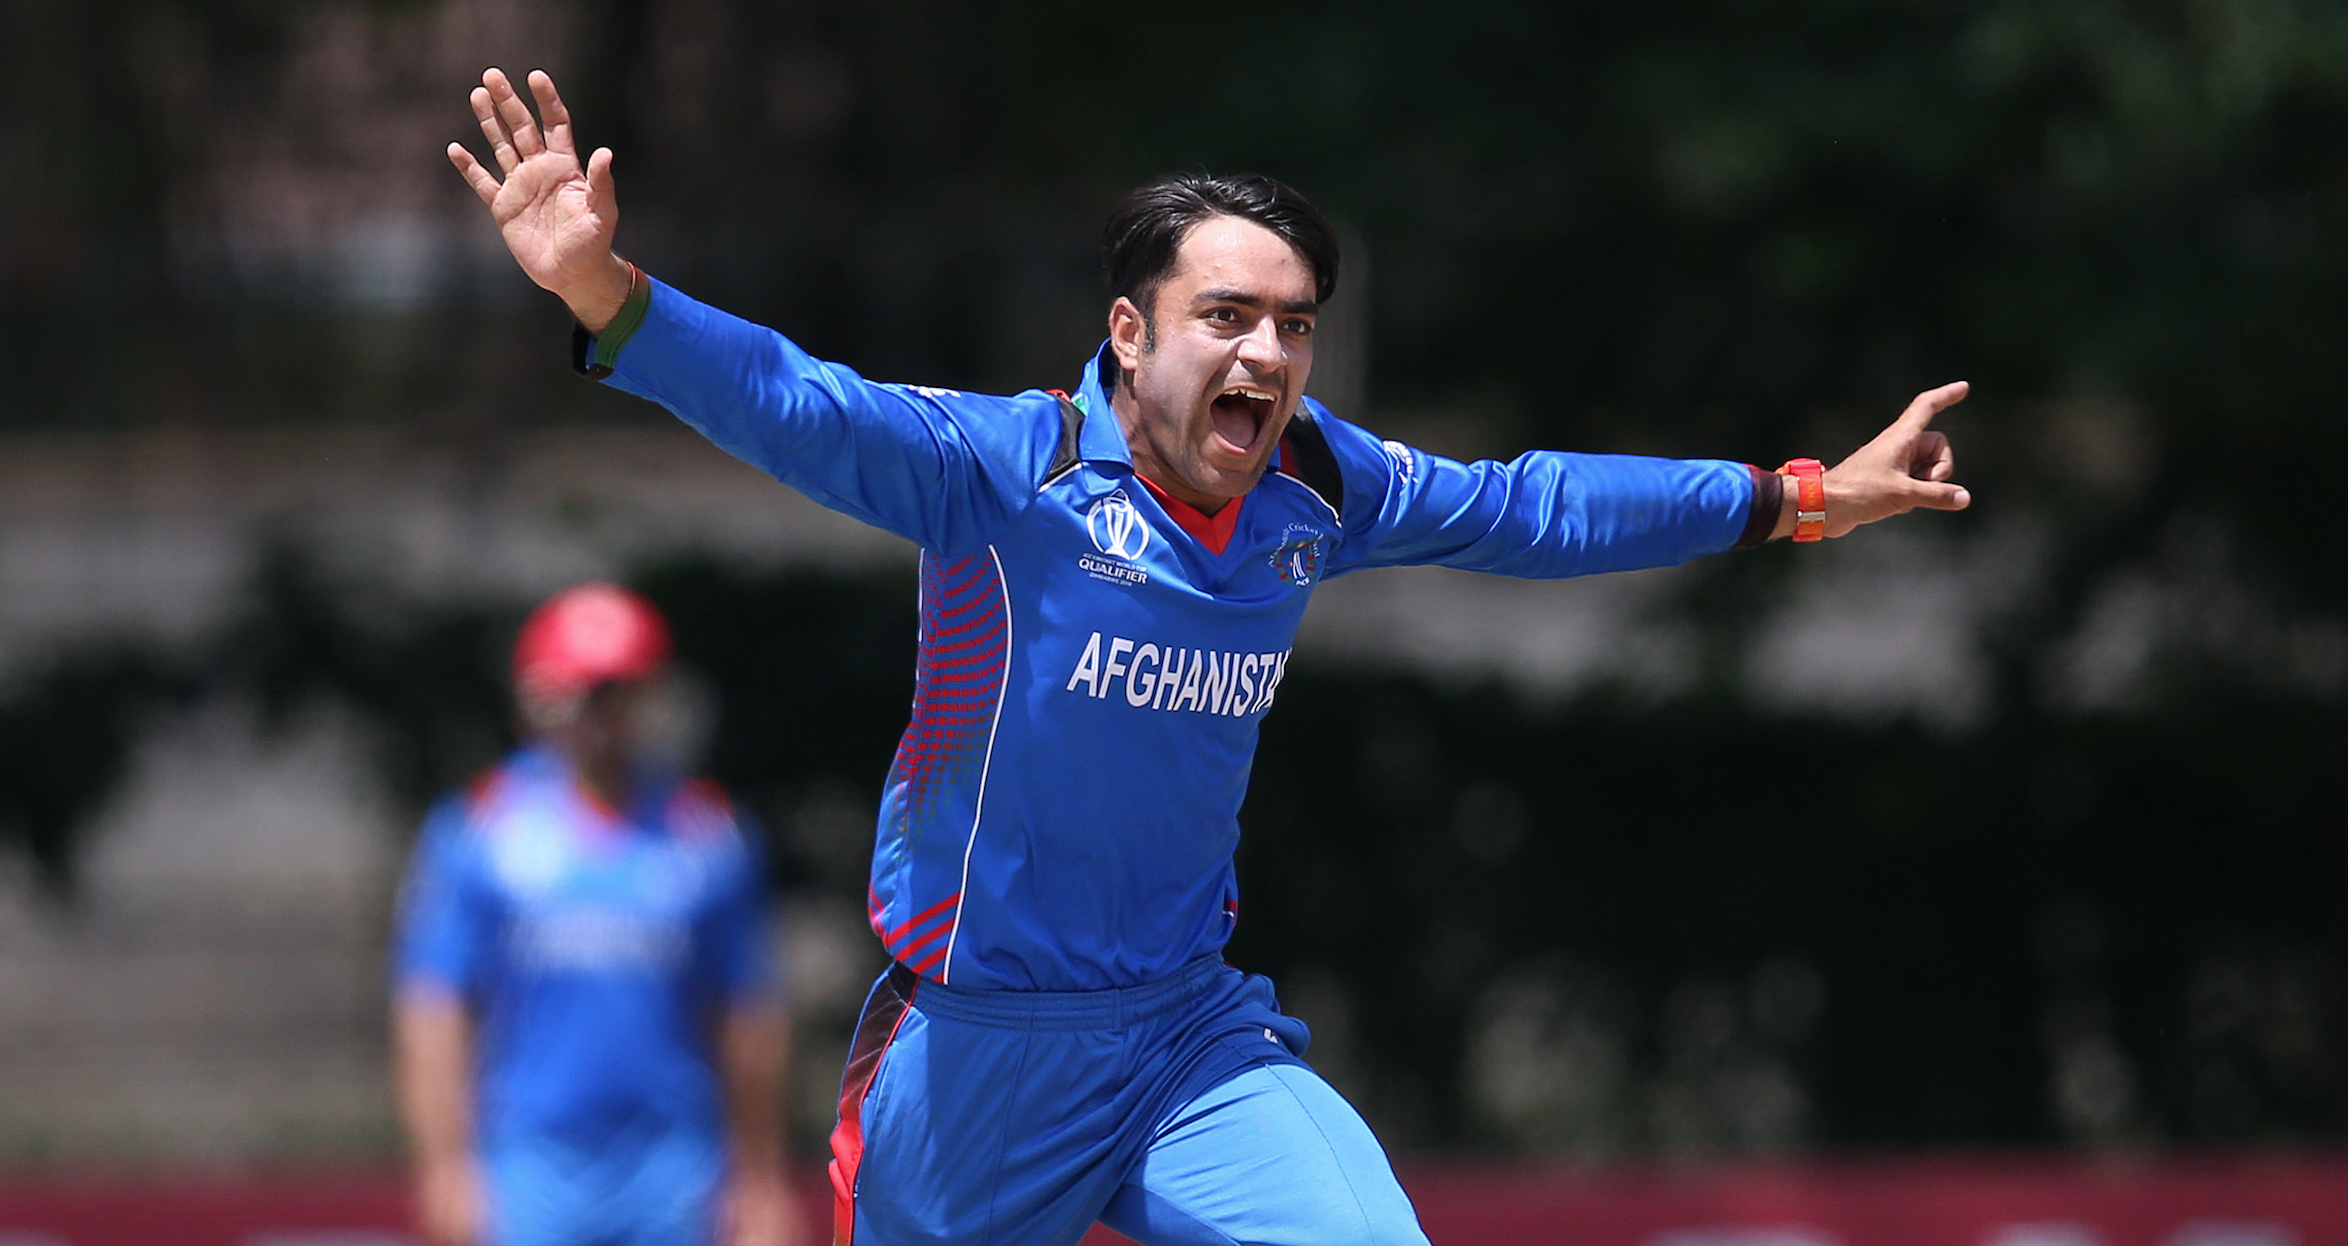 Top-ranked bowler Rashid Khan of Afghanistan named in the ICC World XI